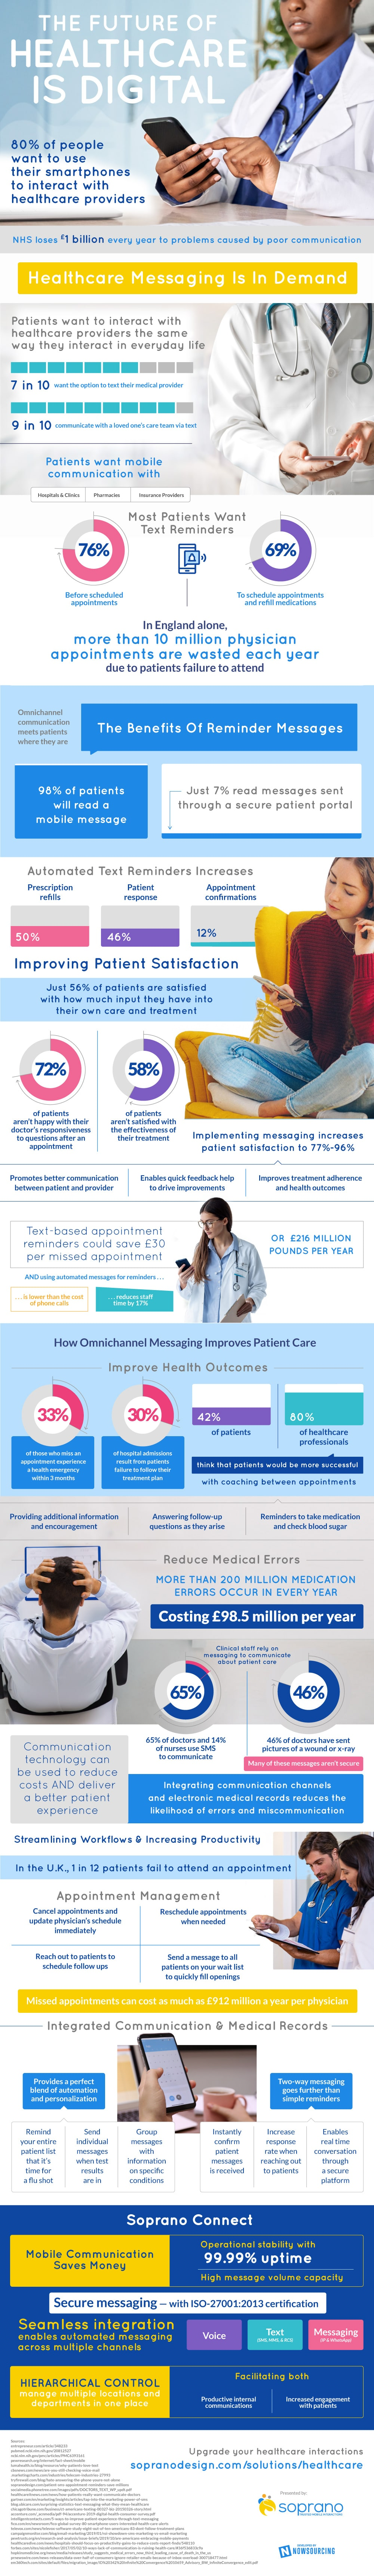 healthcare-mobile-interaction-infographic-emea-v2